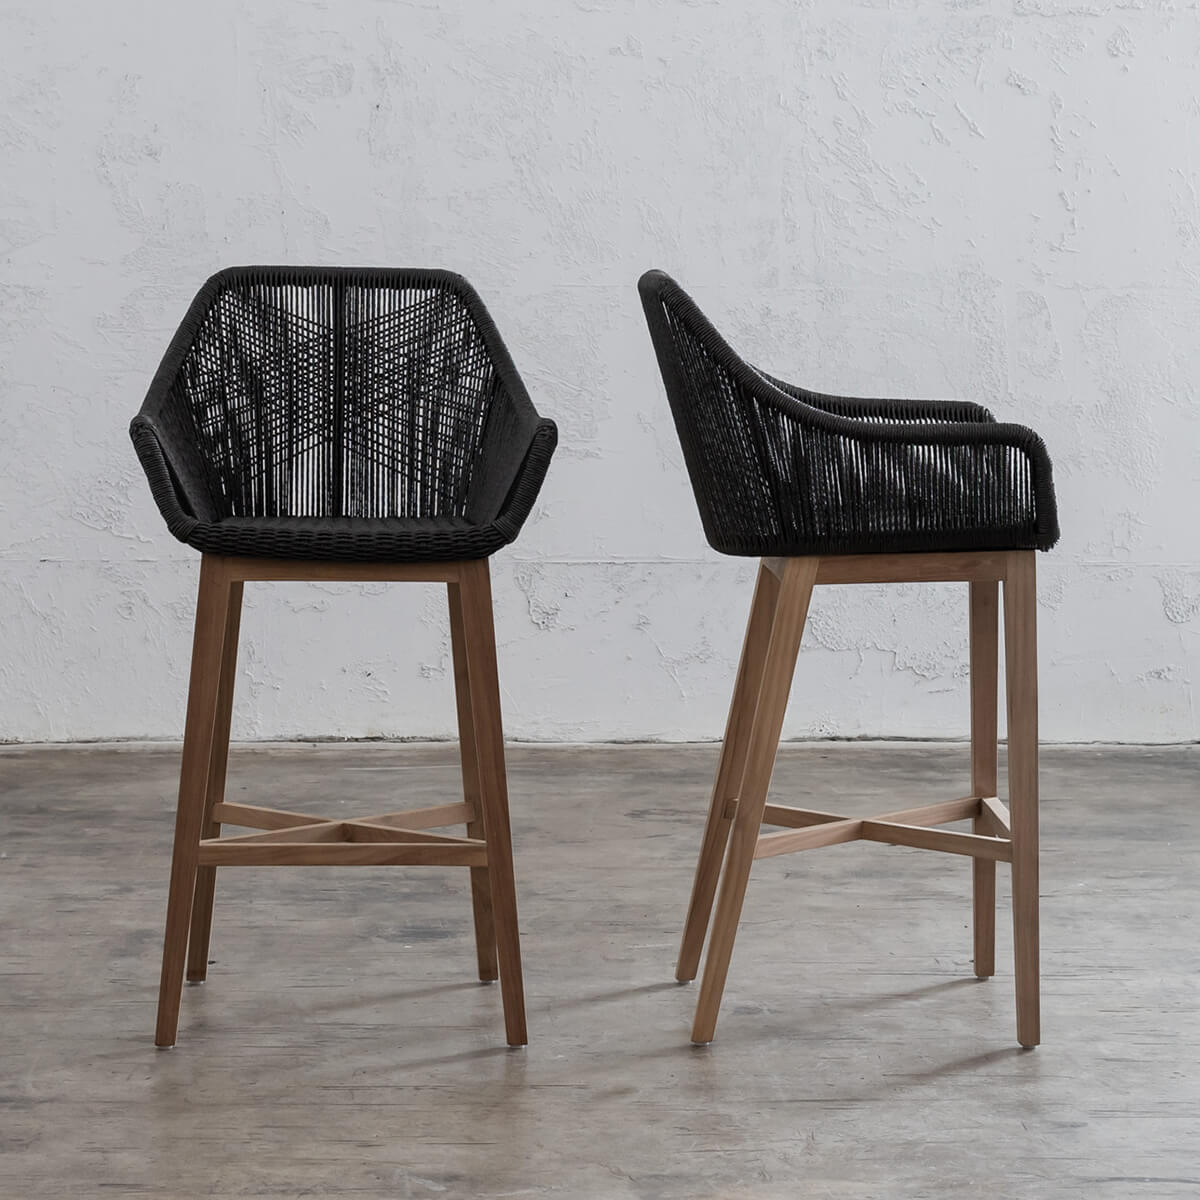 Picture of: Inizia Woven Rattan Outdoor Chair Indoor Bar Chair Hamptons Bar Stool